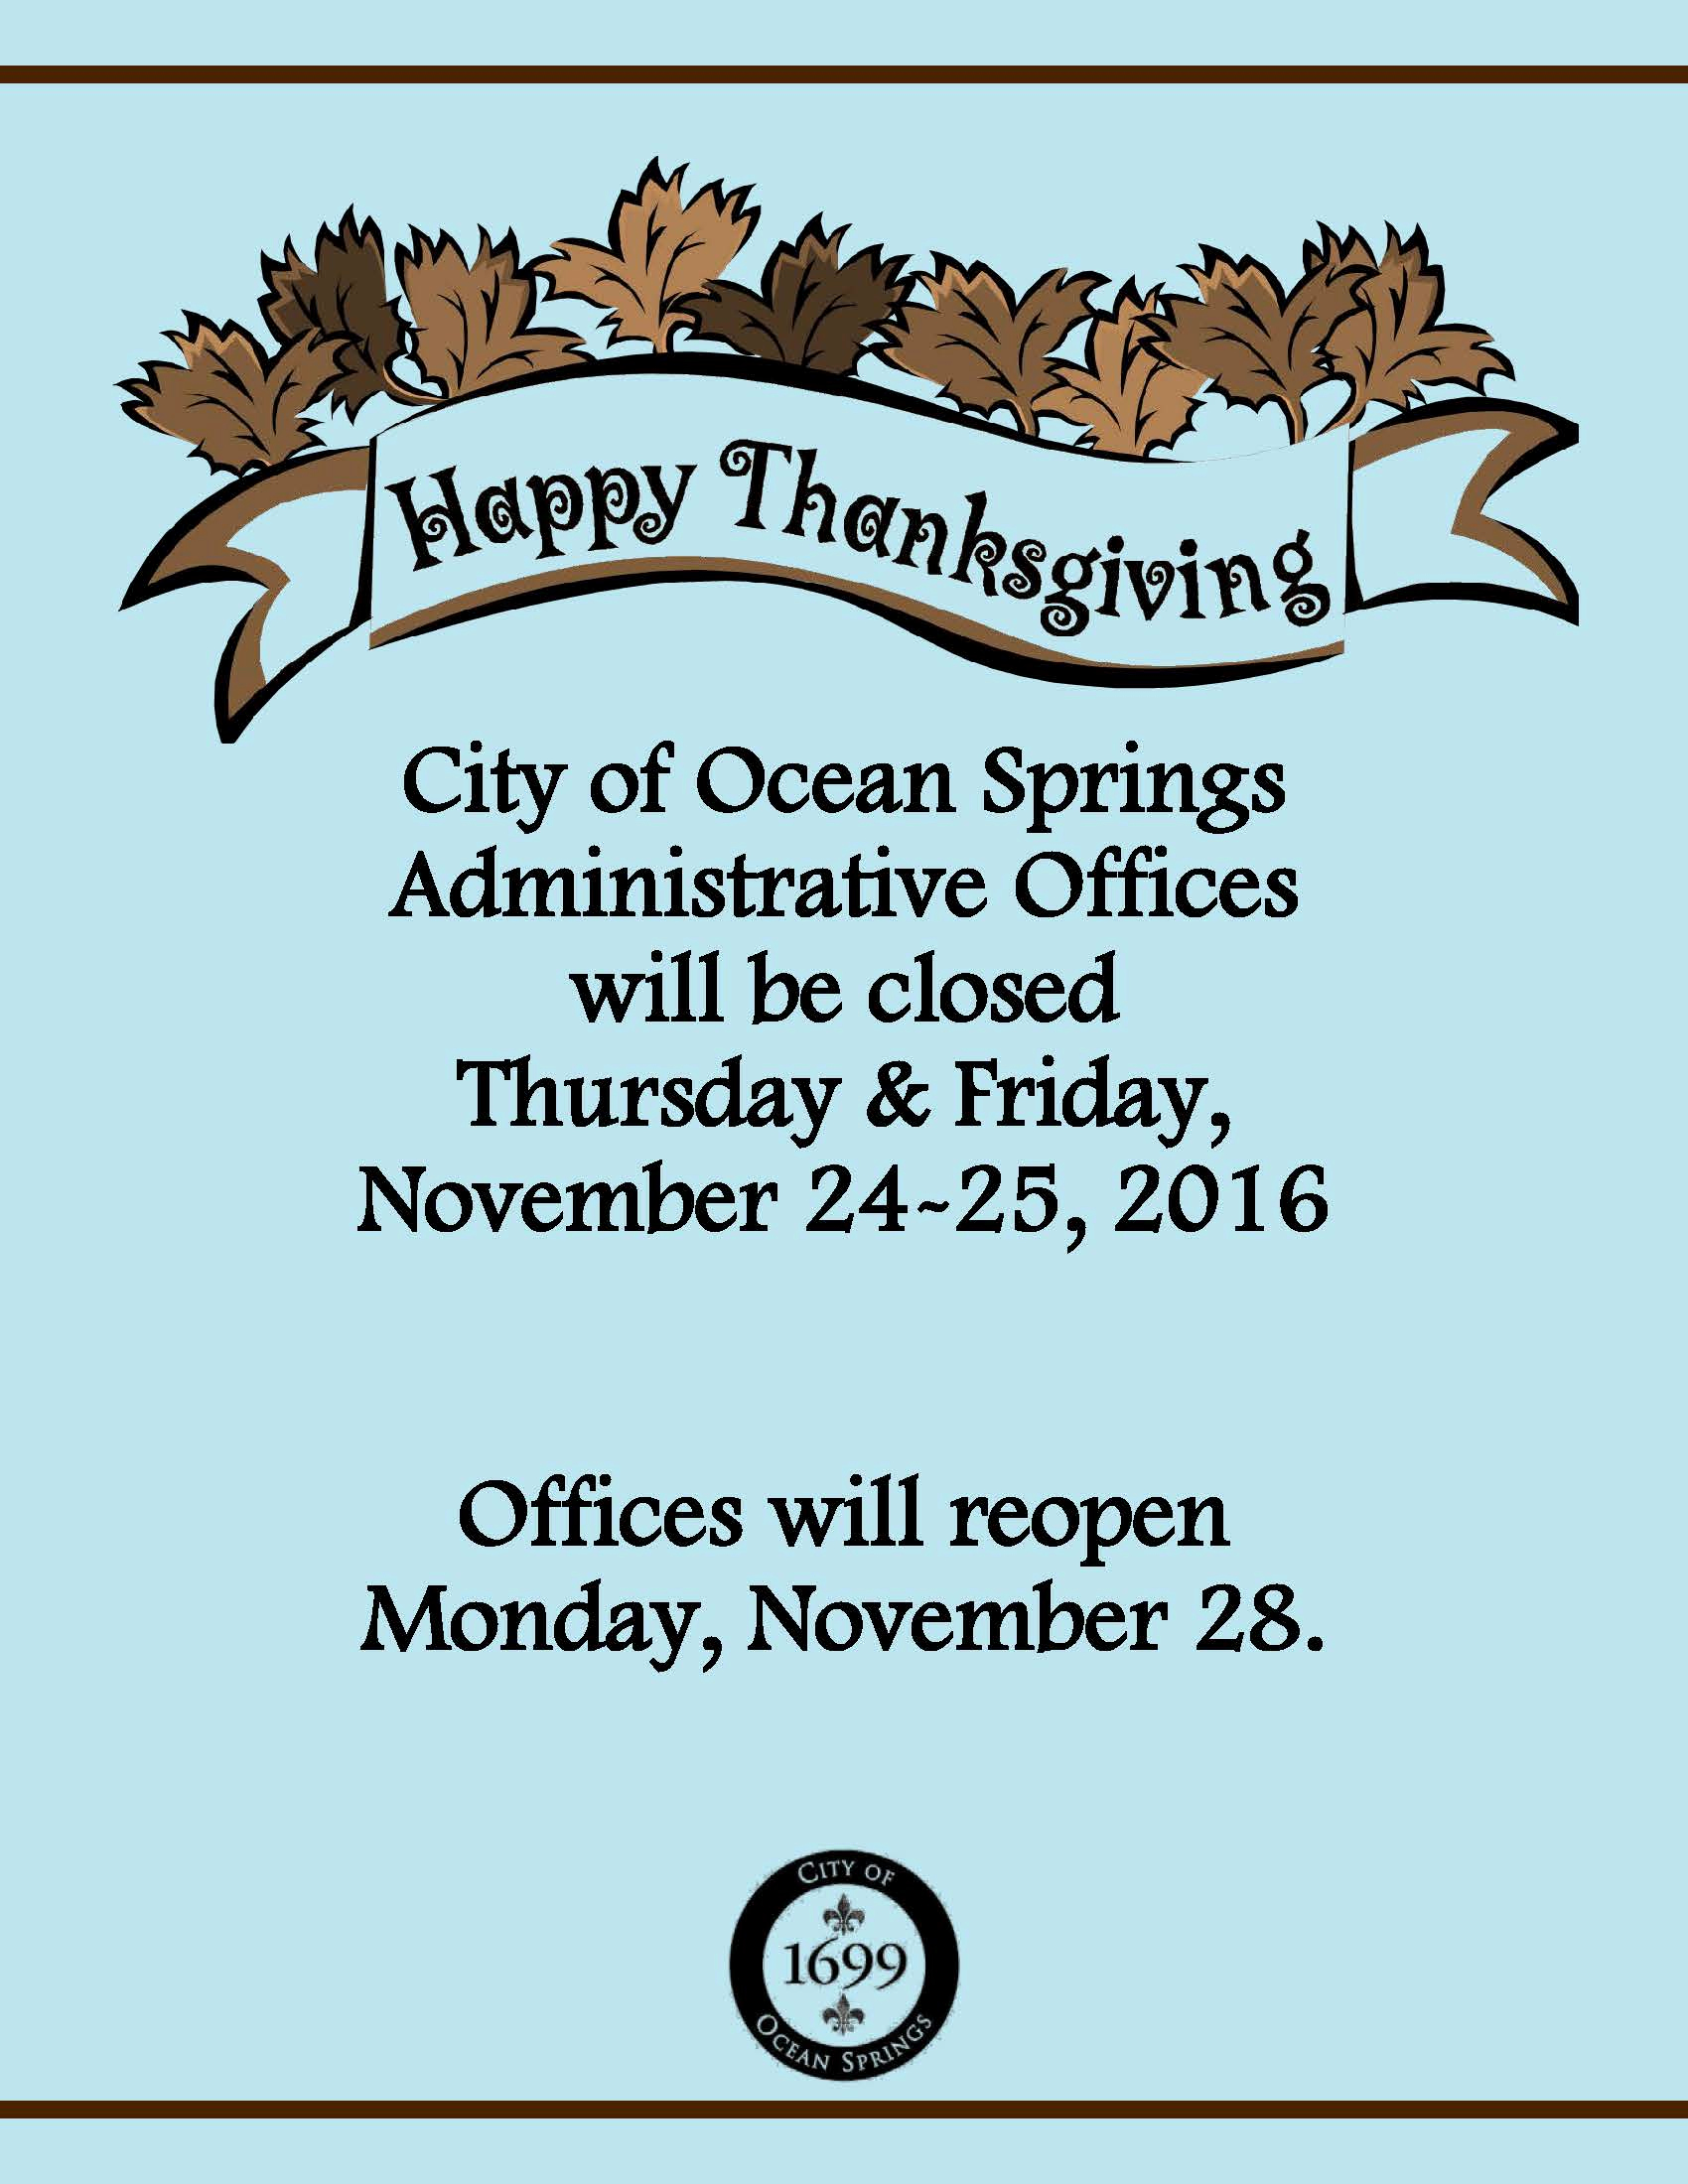 Holiday Closing Notice Template New Notice Holiday Fice Closure for Thanksgiving